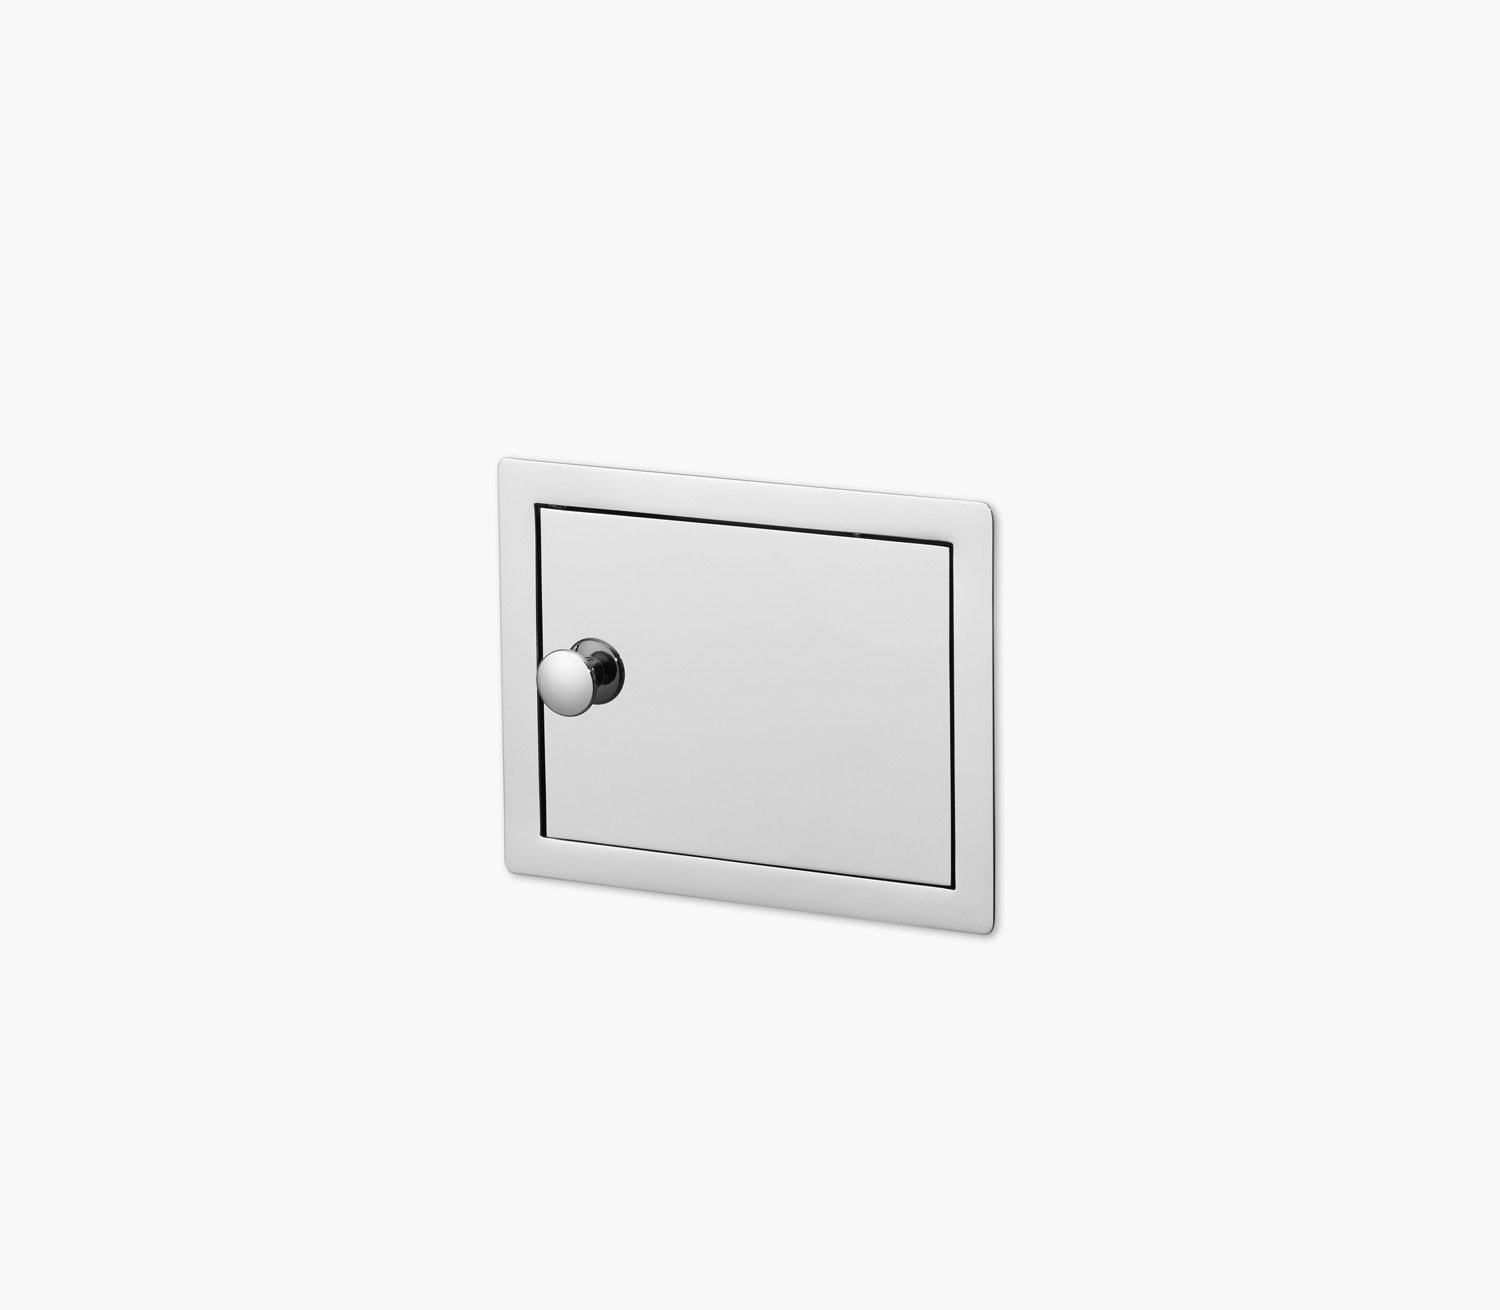 Wall Recessed Toilet Paper Holder II Right Product Image 1